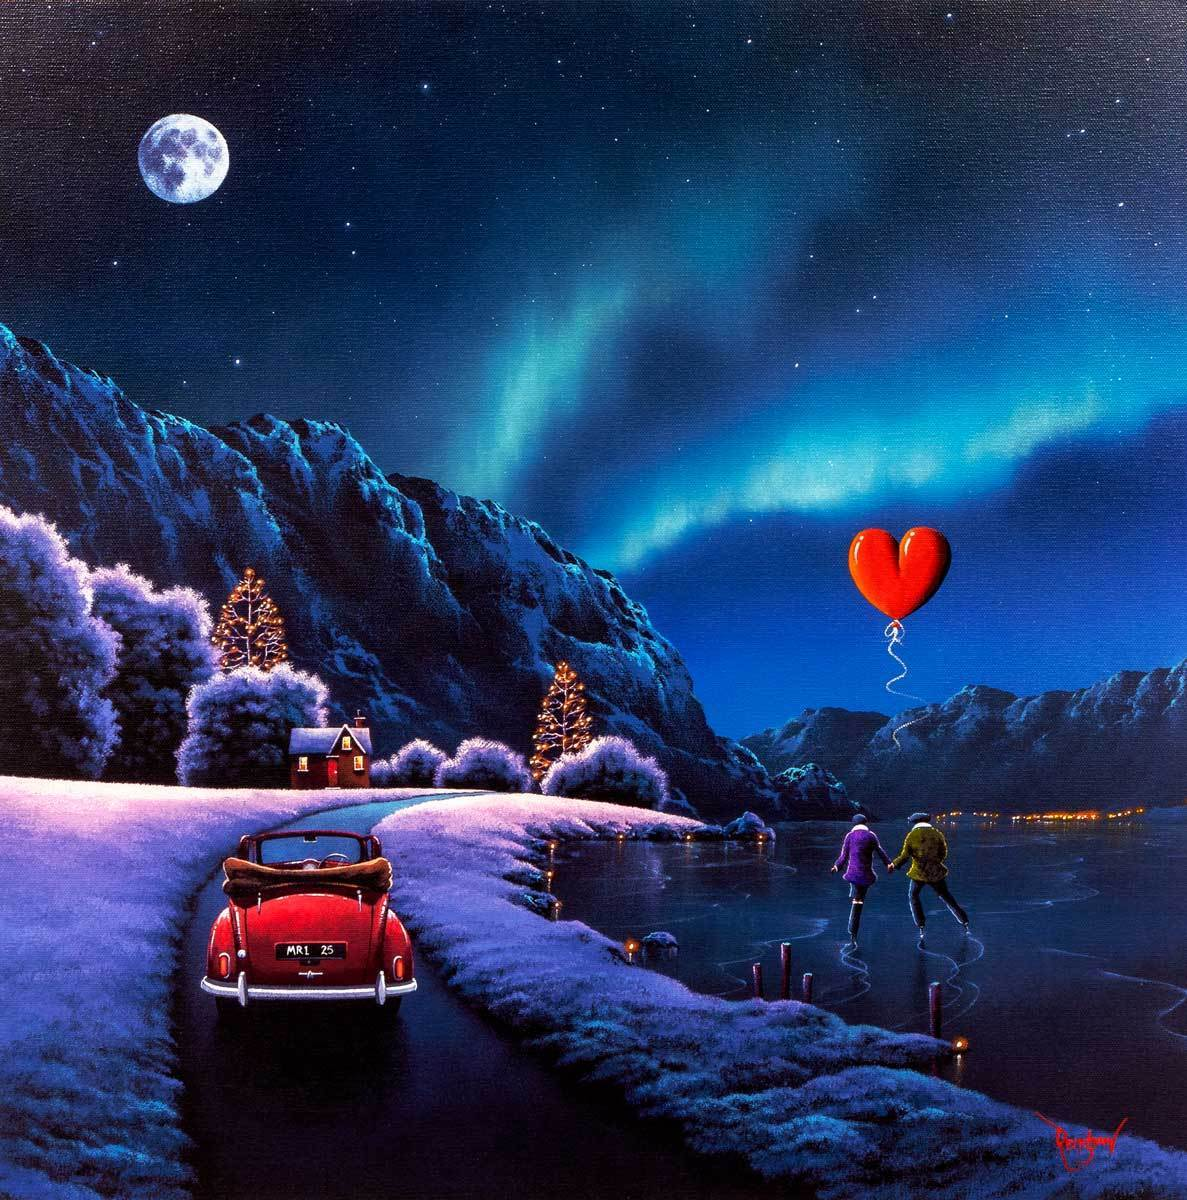 Moonlight Romance - Limited Edition David Renshaw